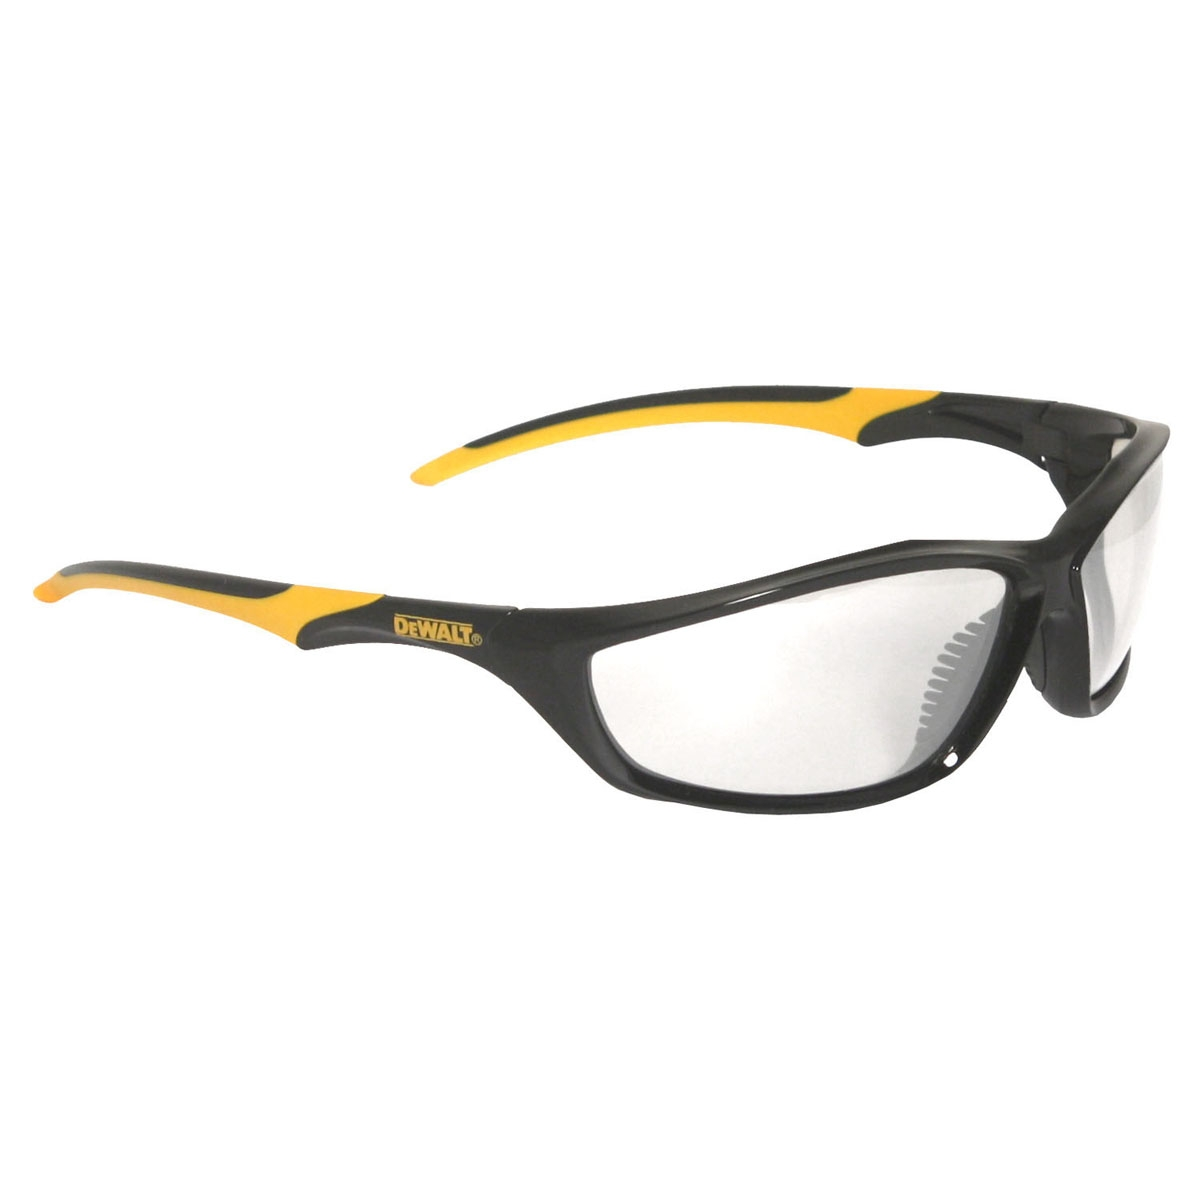 Glasses With Yellow Frame : DeWalt DPG96-1 Router Safety Glasses - Black/Yellow Frame ...